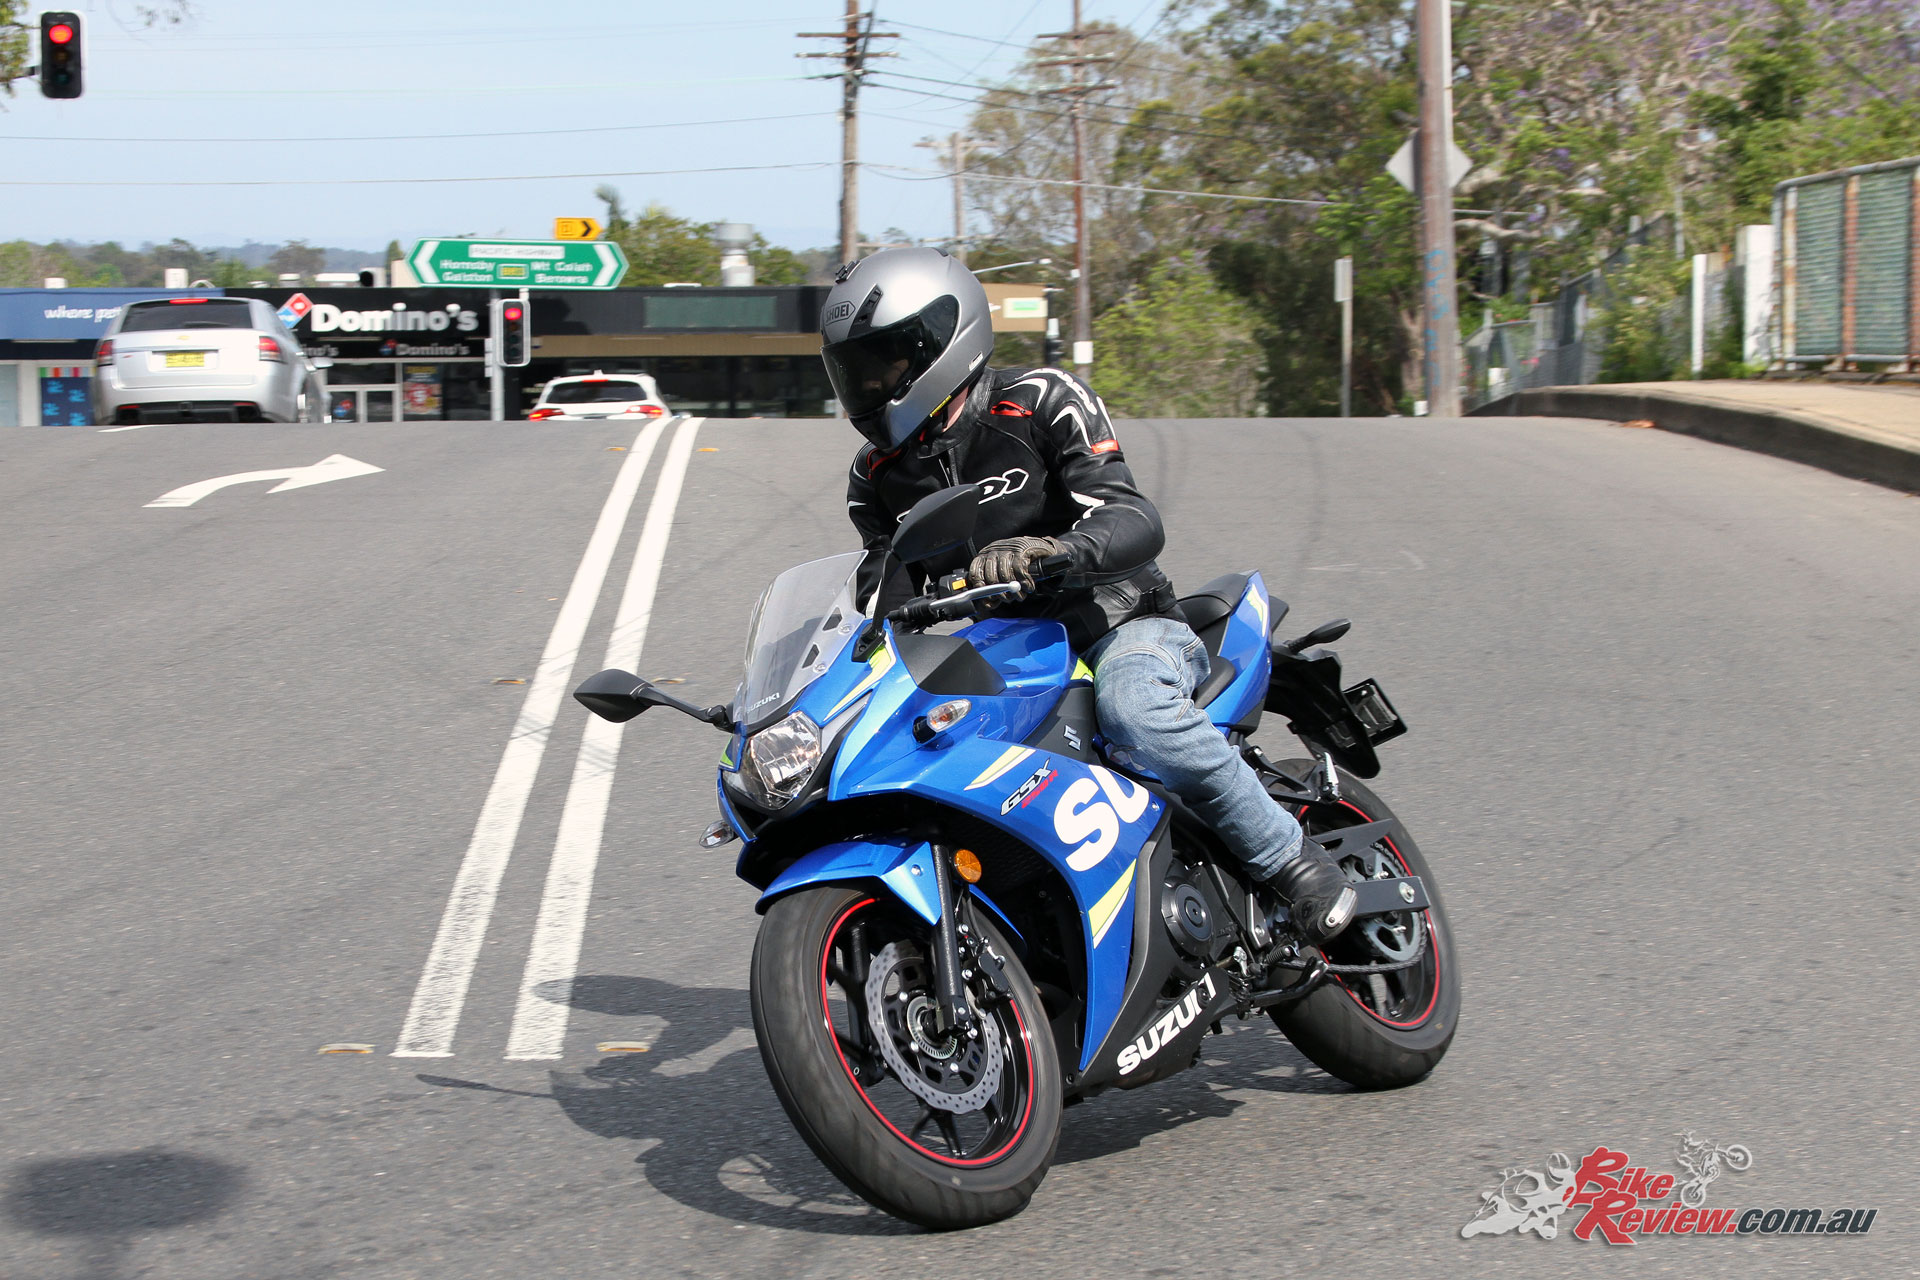 The GSX250R is an ideal around towner, and is stable, light and predictable